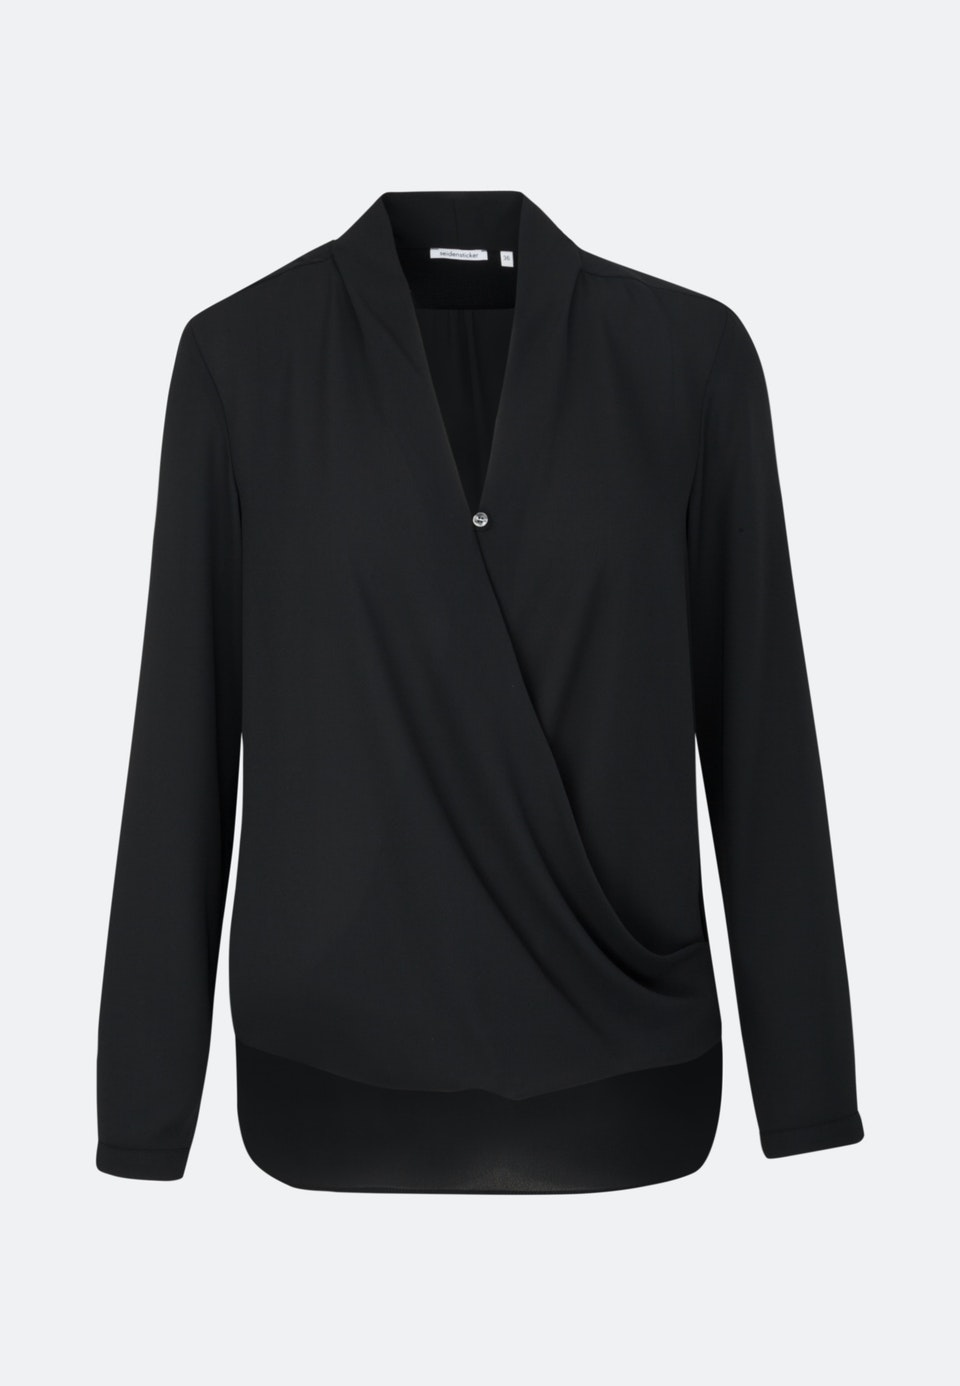 Krepp Wraparound Blouse made of 100% Polyester in Black |  Seidensticker Onlineshop